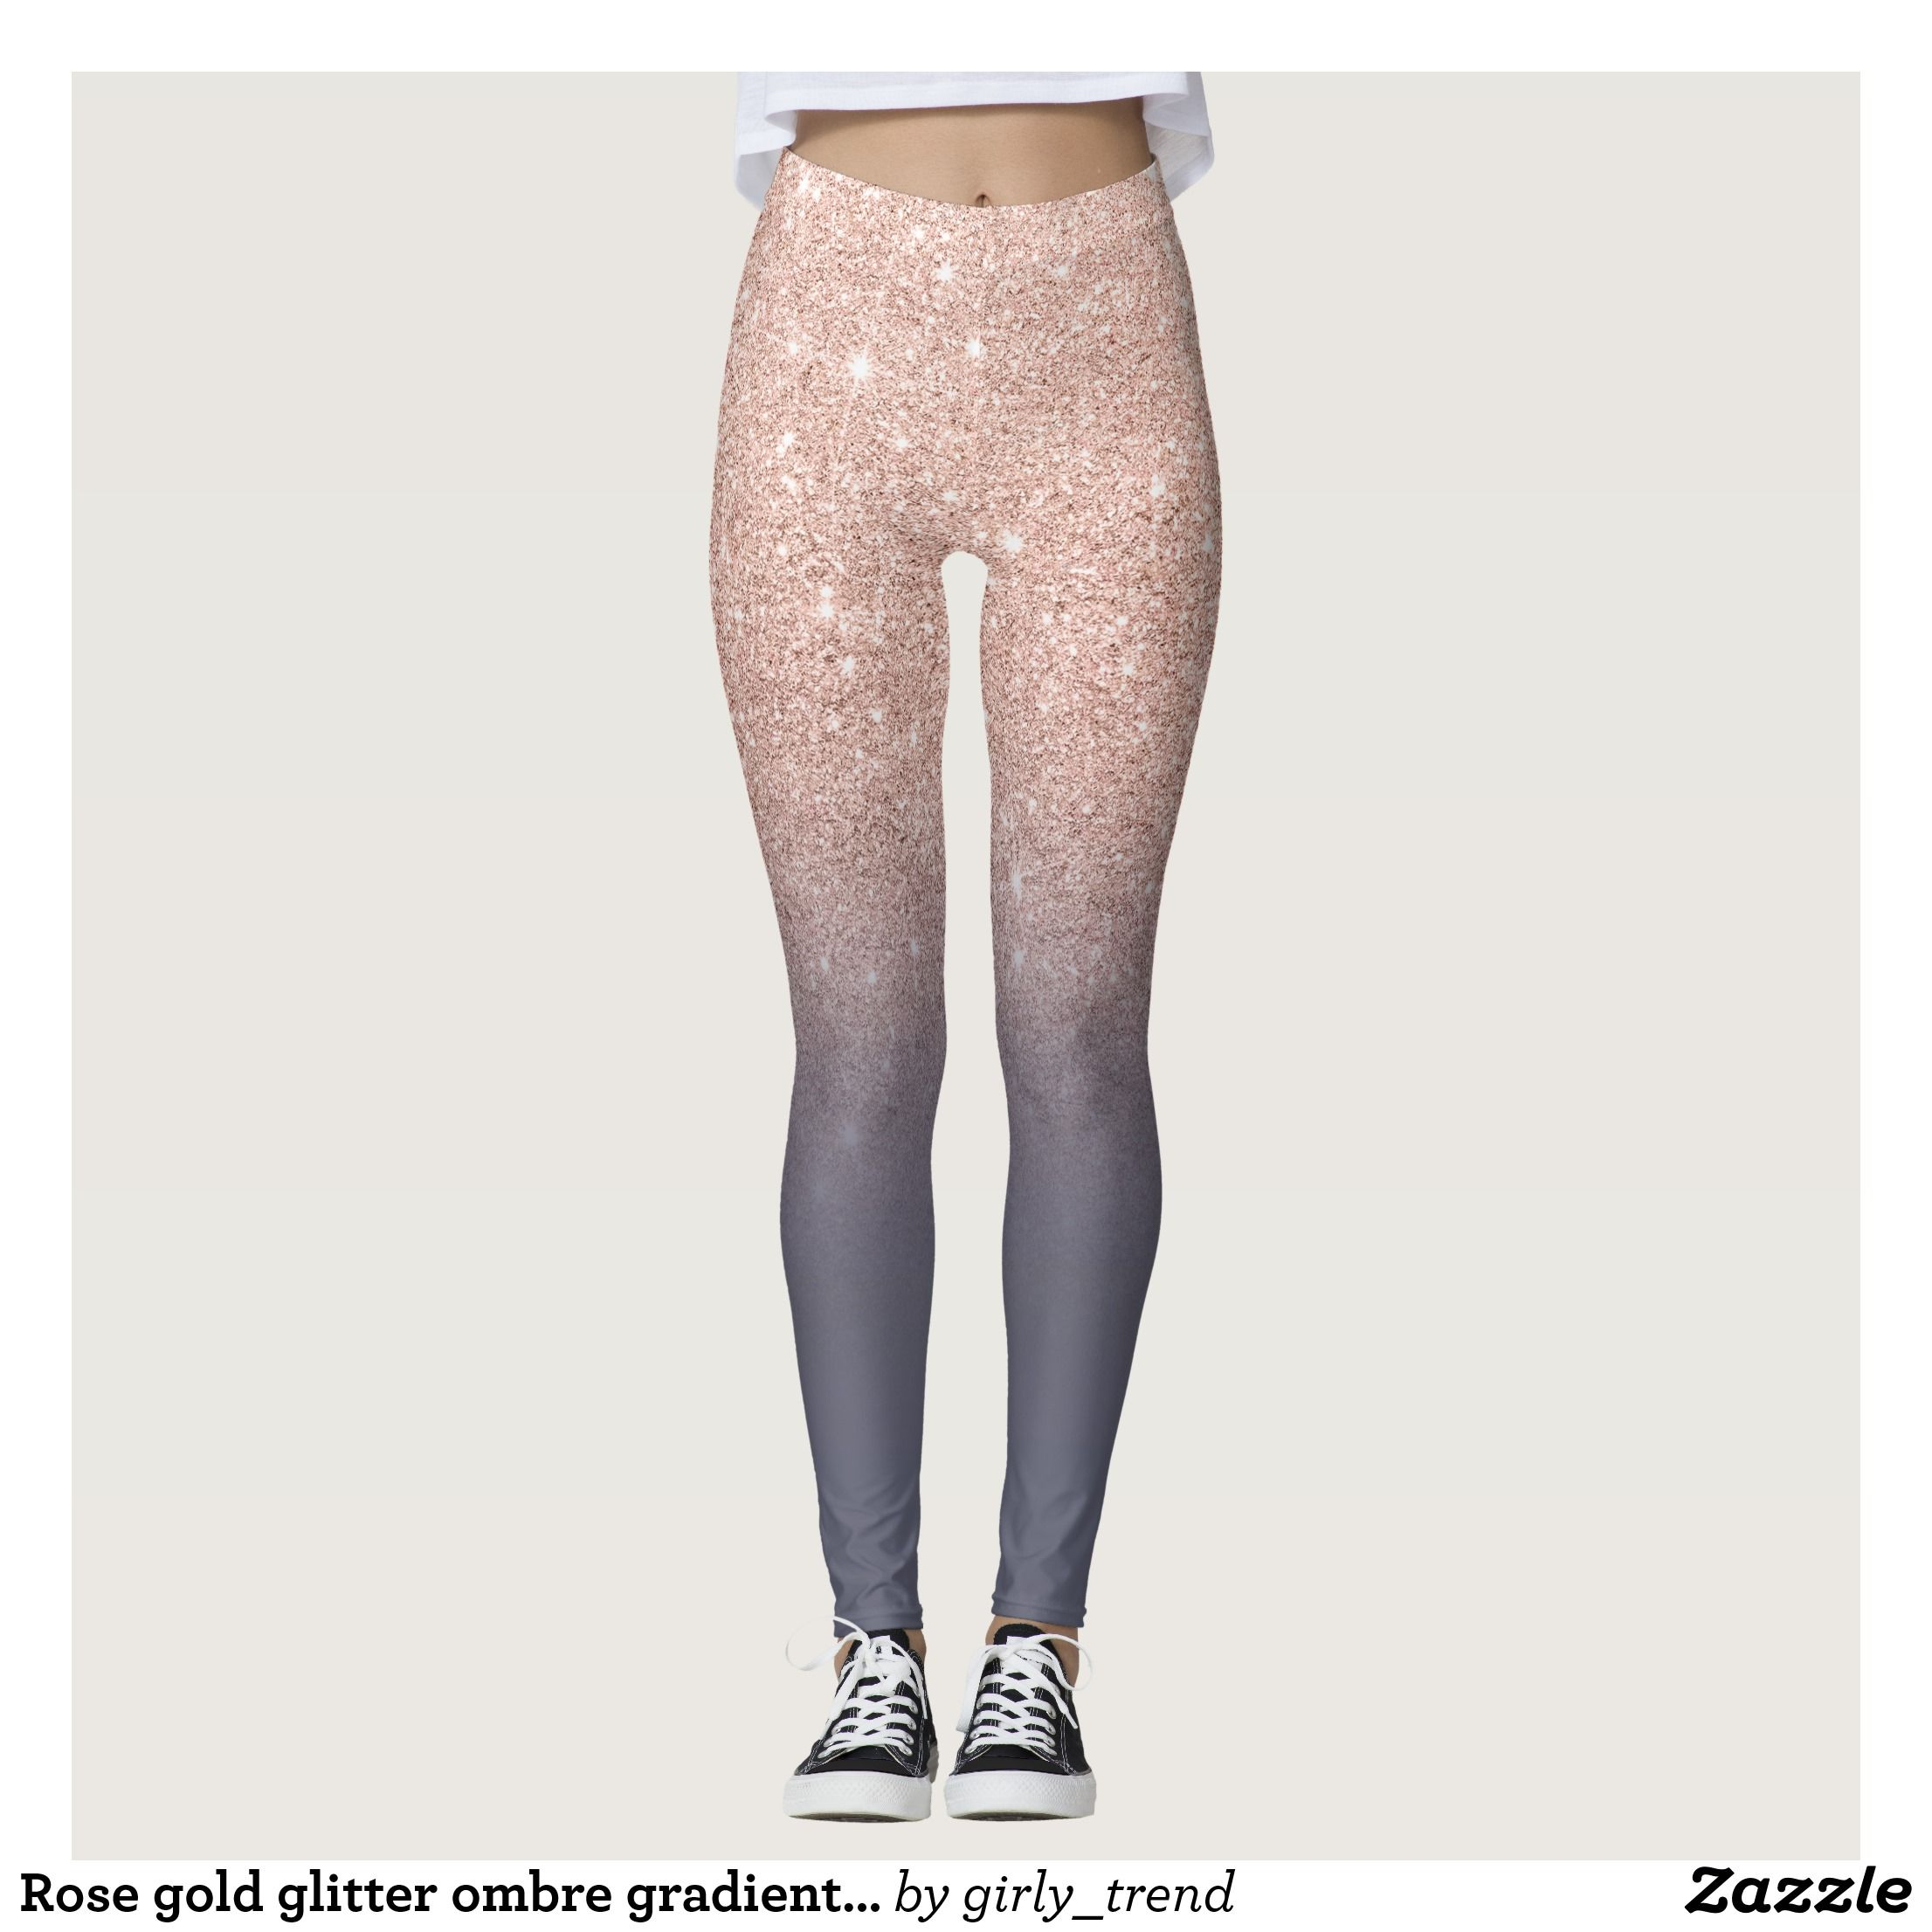 eaf76397f52f4 Rose gold glitter ombre gradient purple grey leggings : Beautiful #Yoga  Pants - #Exercise Leggings and #Running Tights - Health and Training  Inspiration ...